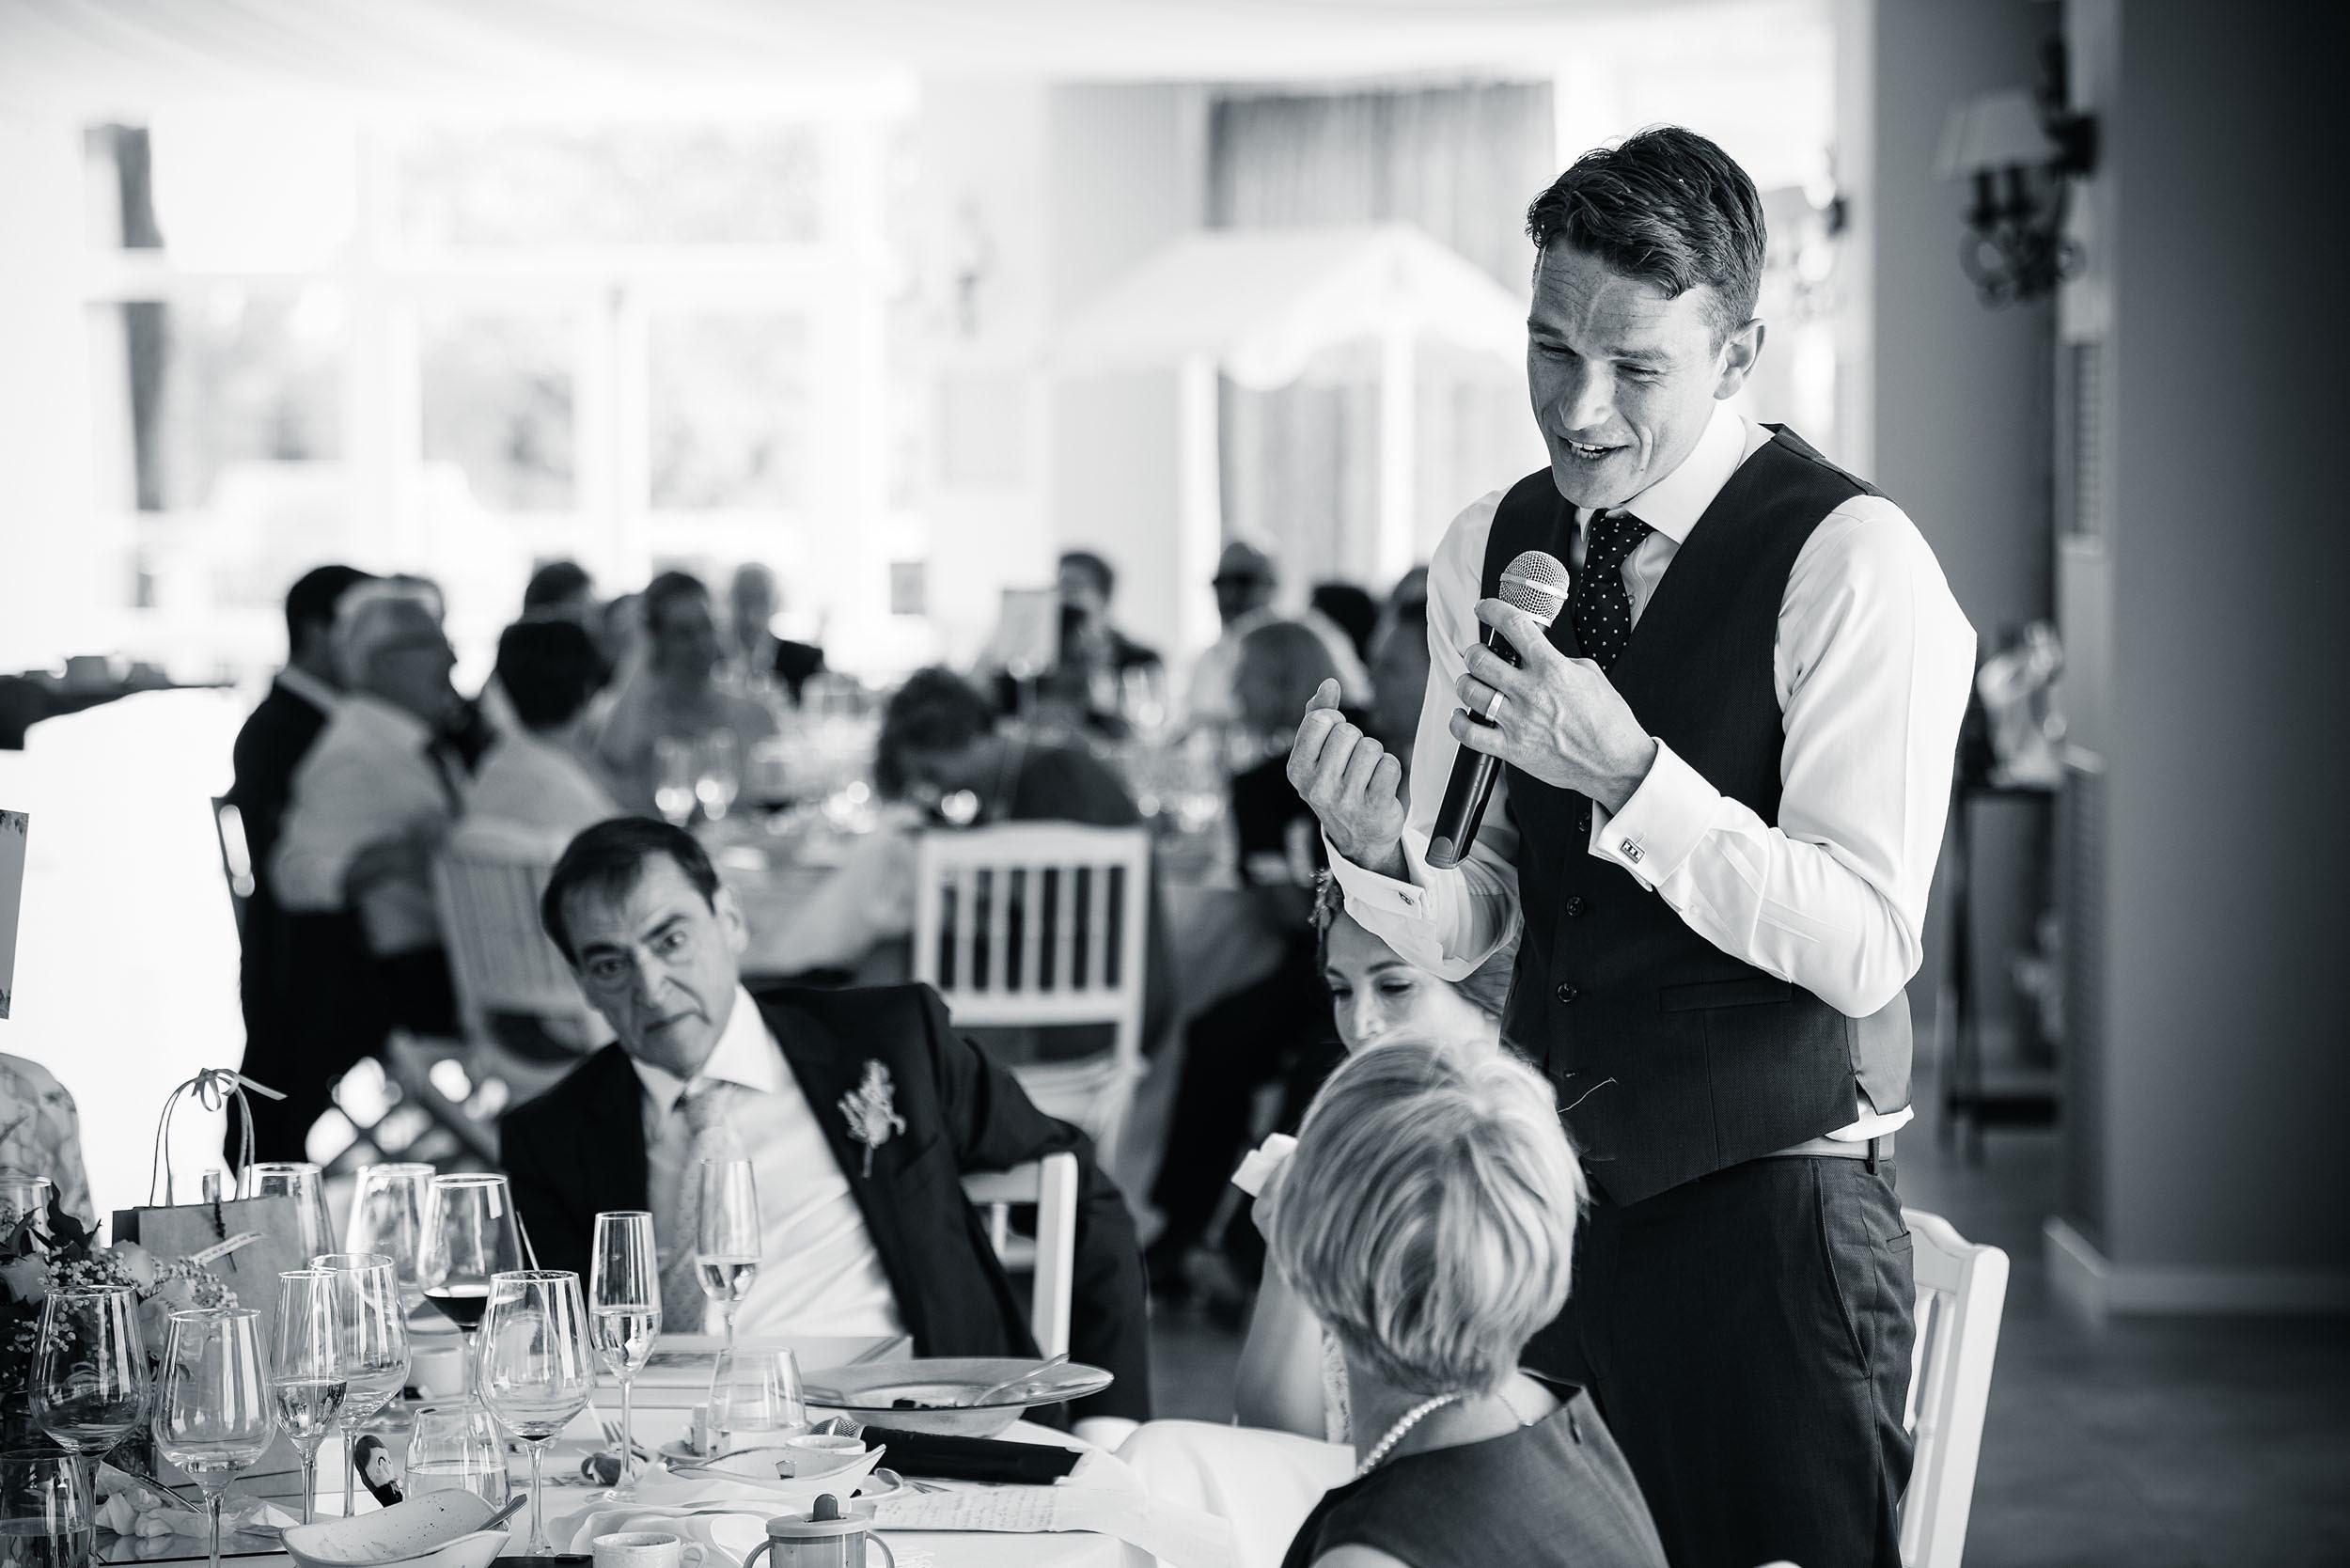 wedding-speech-groom-best-man-photography-meal-reportage